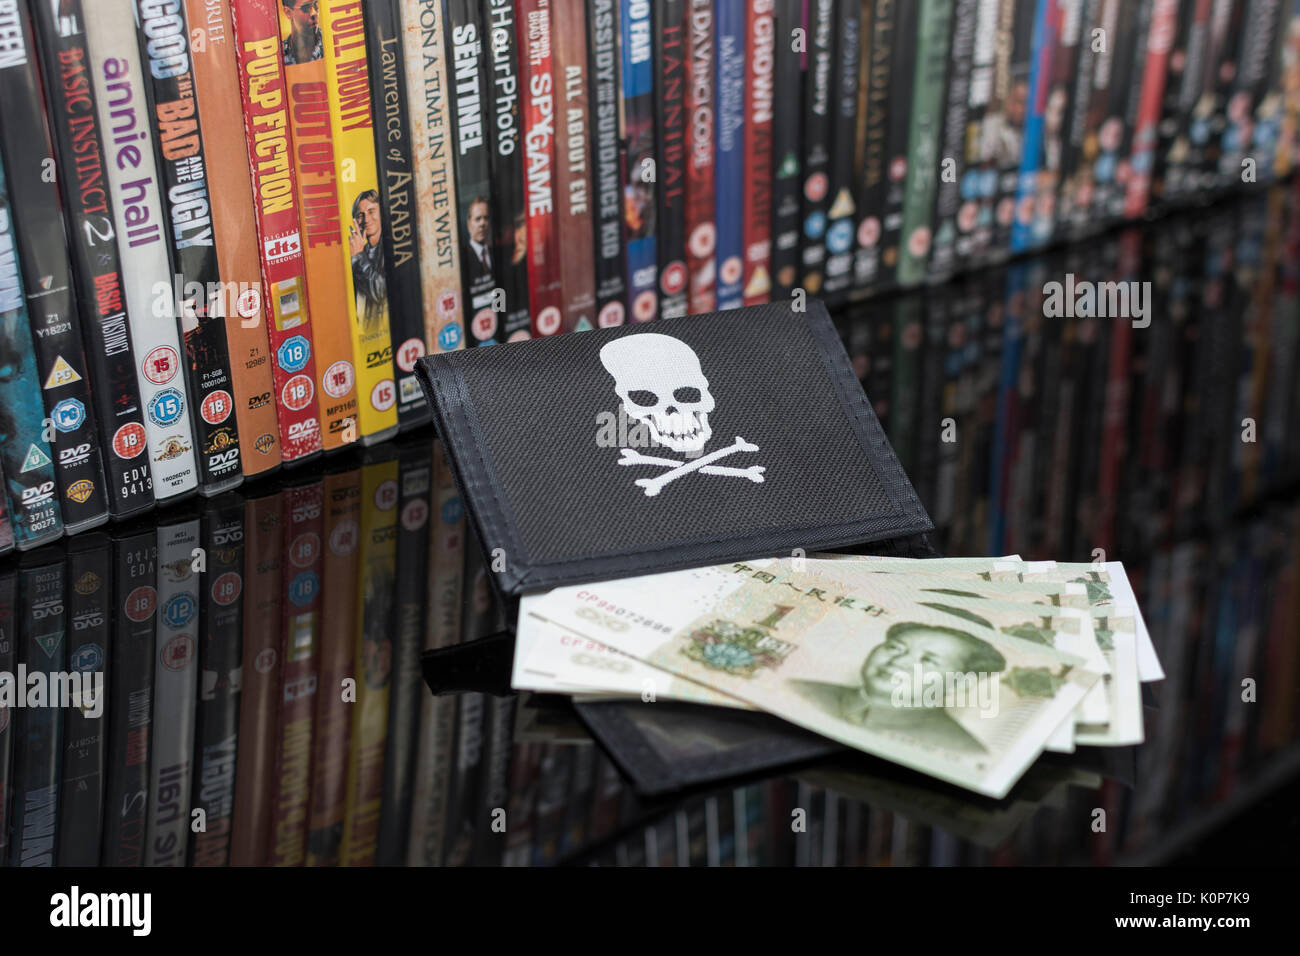 Stacked DVD movies & black pirate wallet with Chinese renminbi banknotes - metaphor for Chinese copyright and IP theft - US-China trade war. - Stock Image